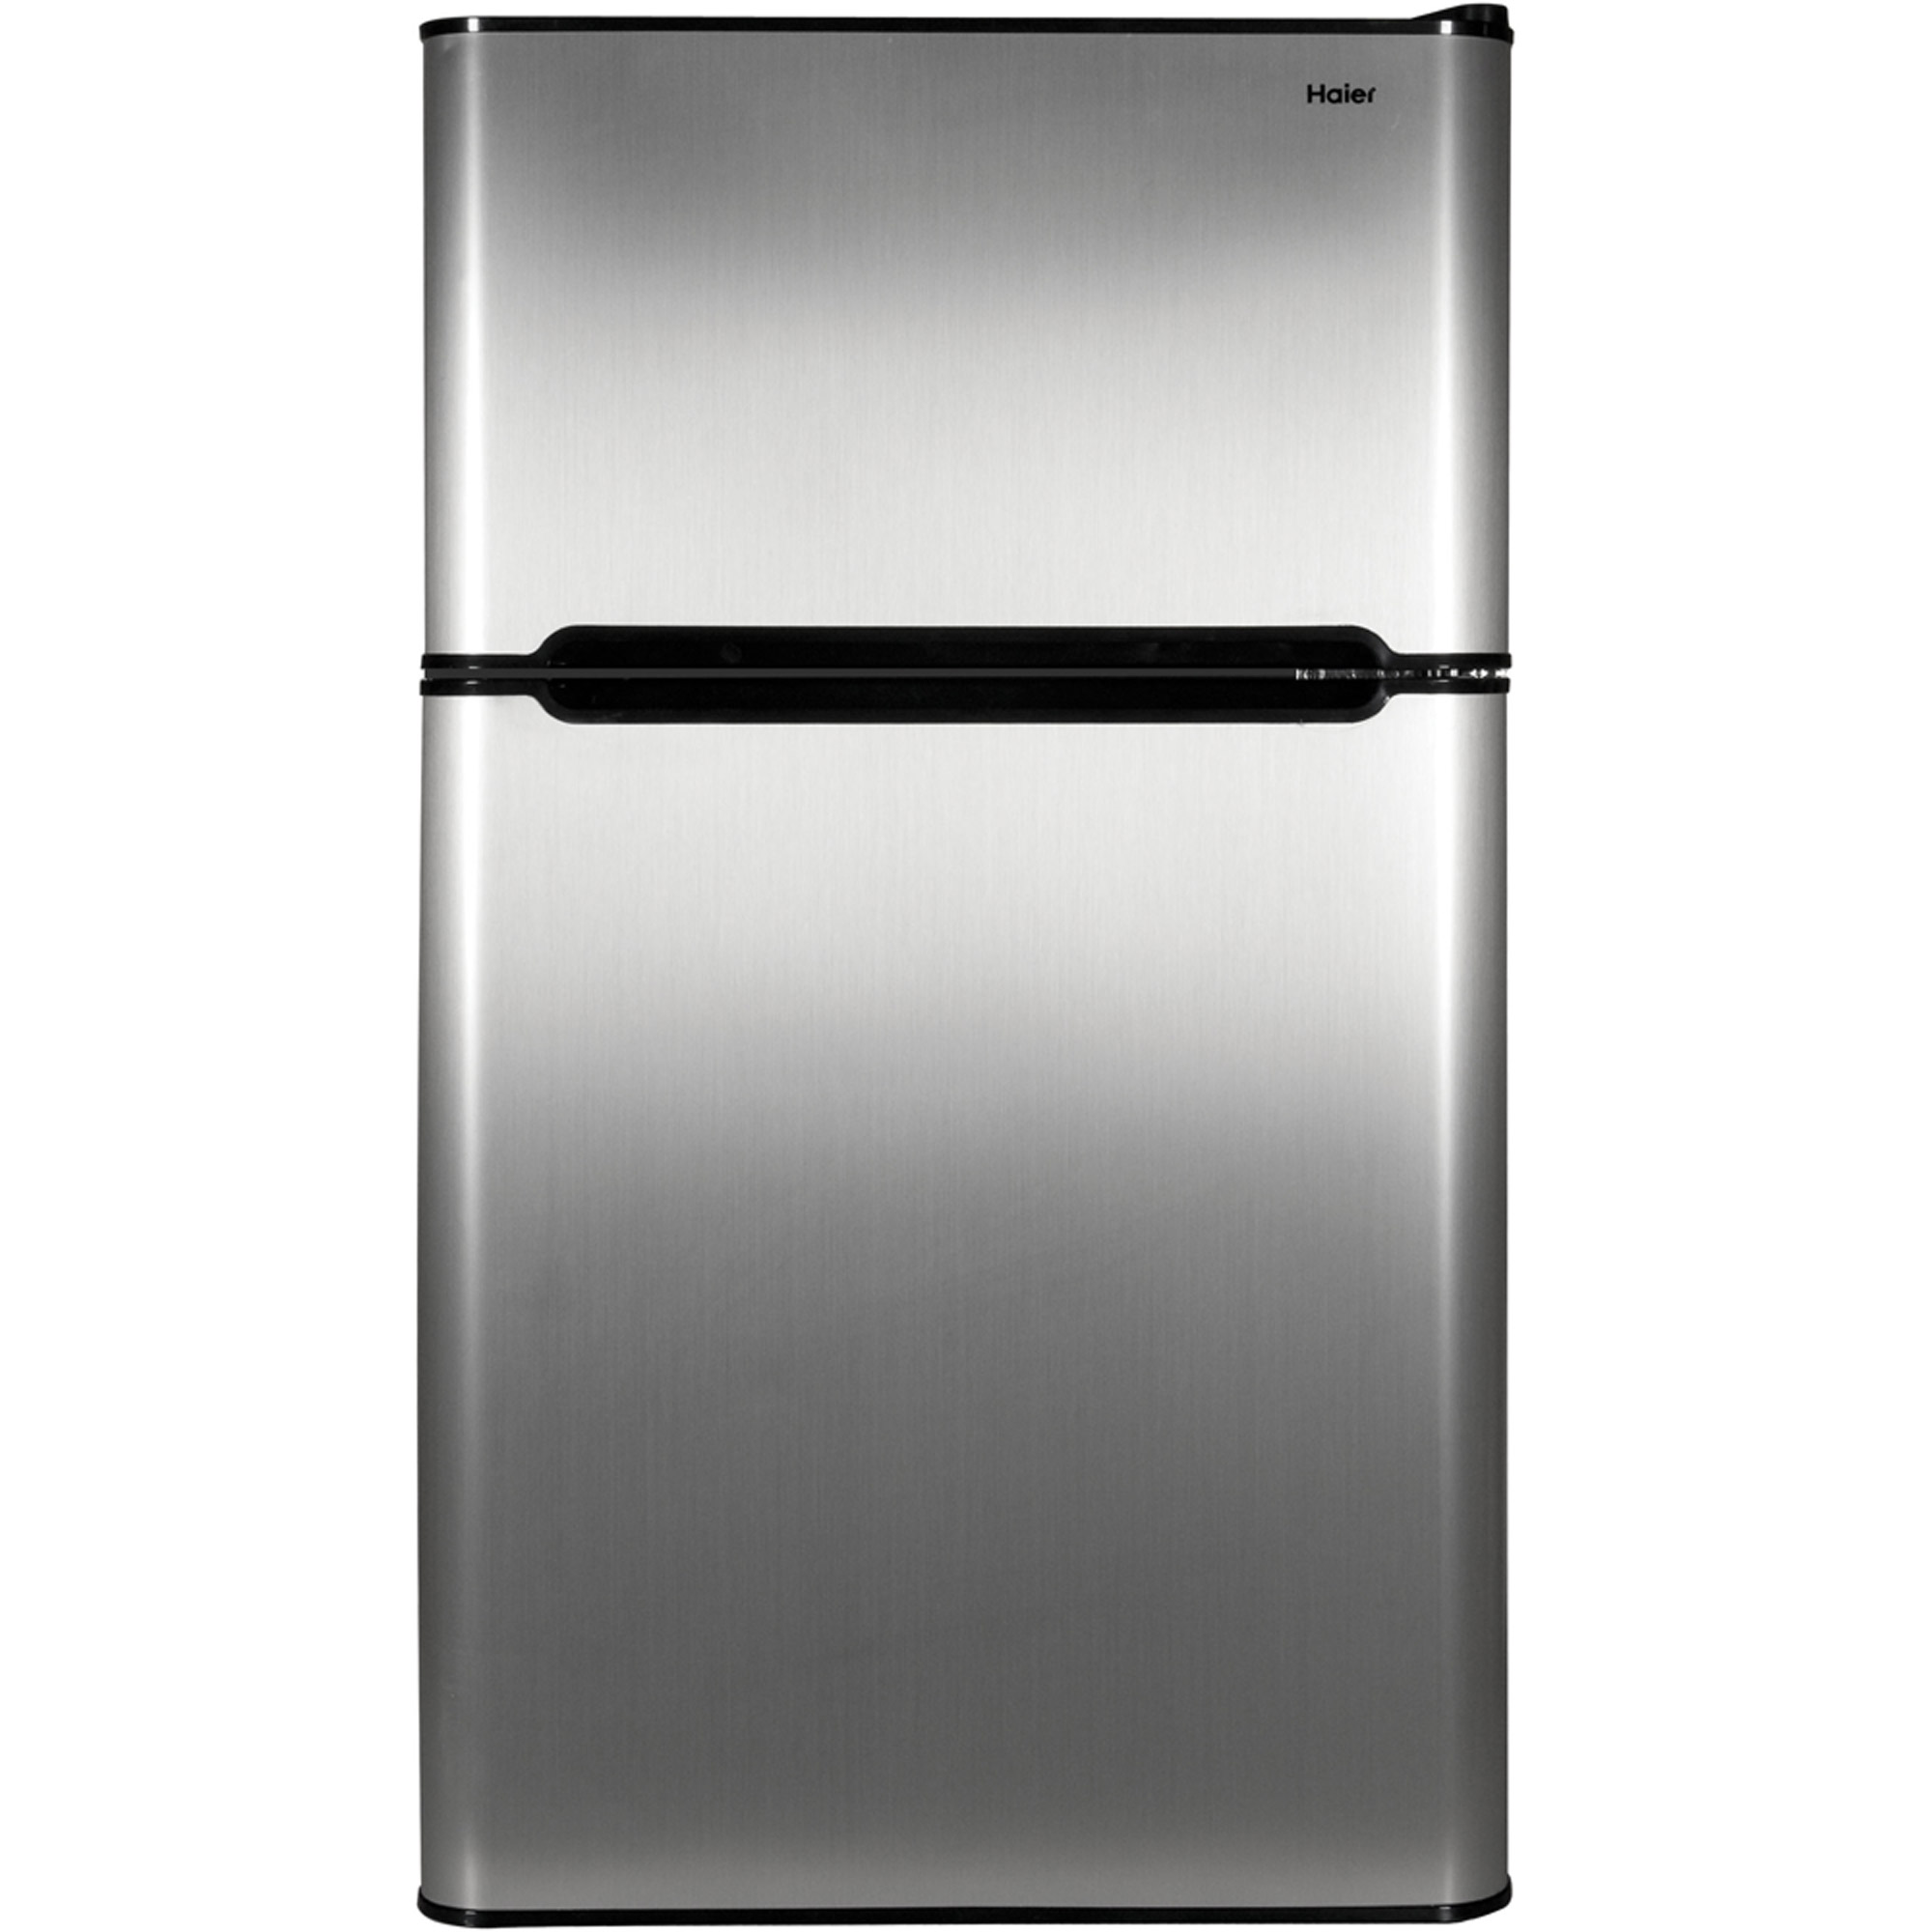 14 Cu Ft Refrigerator Haier 3 2 Cu Ft Two Door Refrigerator With Freezer Hc32tw10sv Black